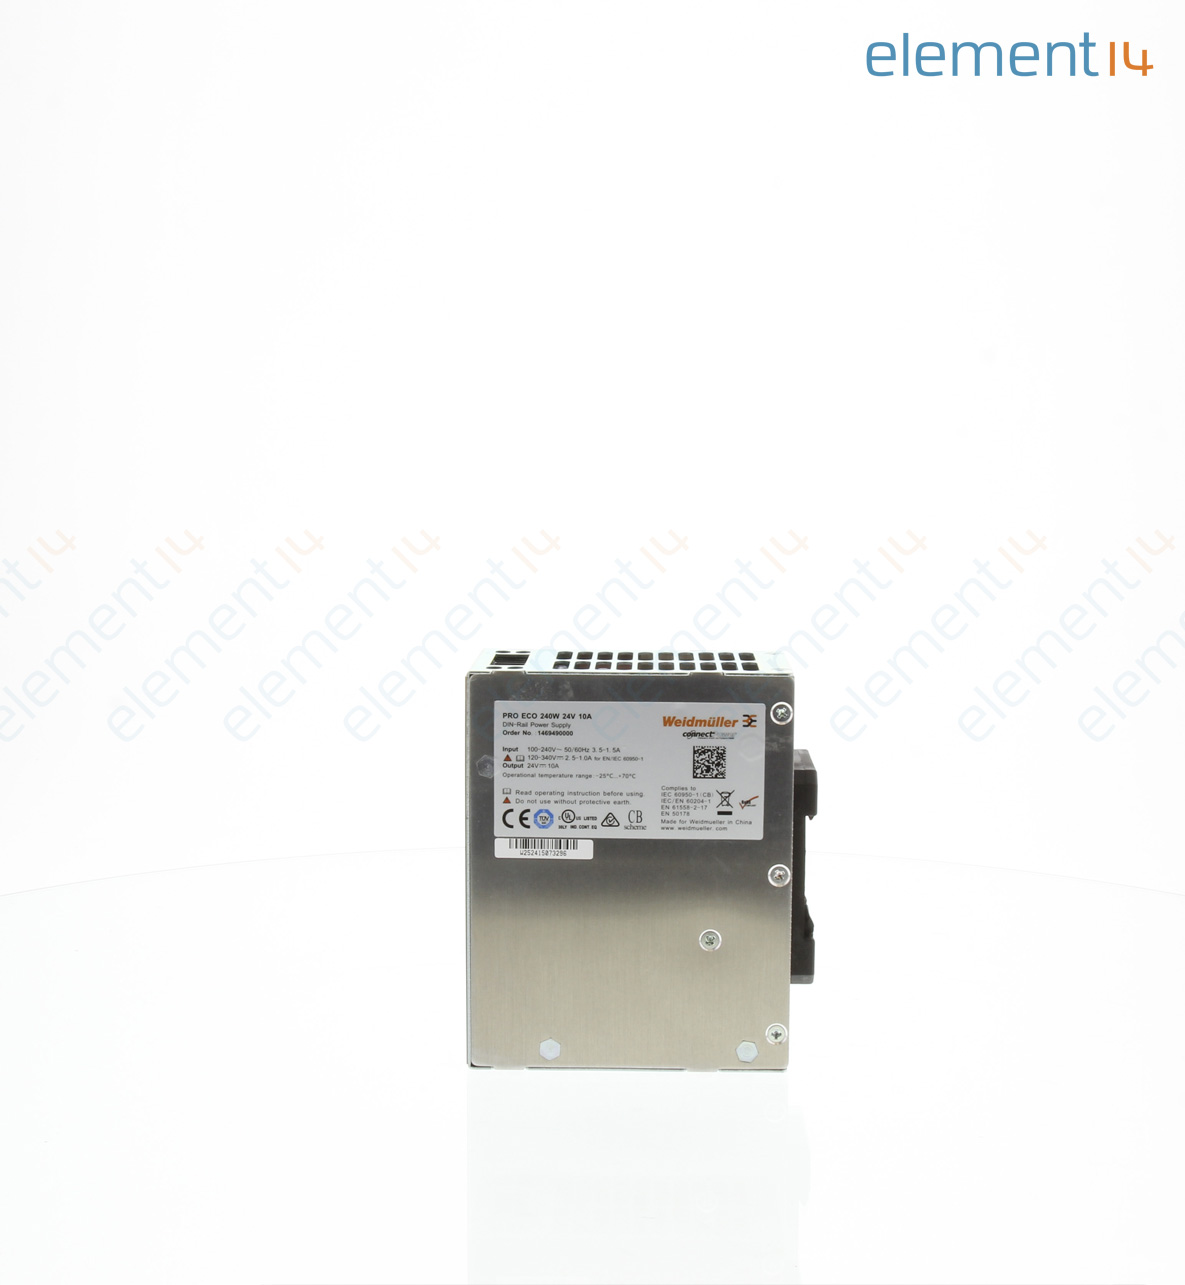 1469490000 Weidmuller Ac Dc Converter 240w 24v Tahmid39s Blog Power Control With Thyristor Pulse Skipping Using Add To Compare